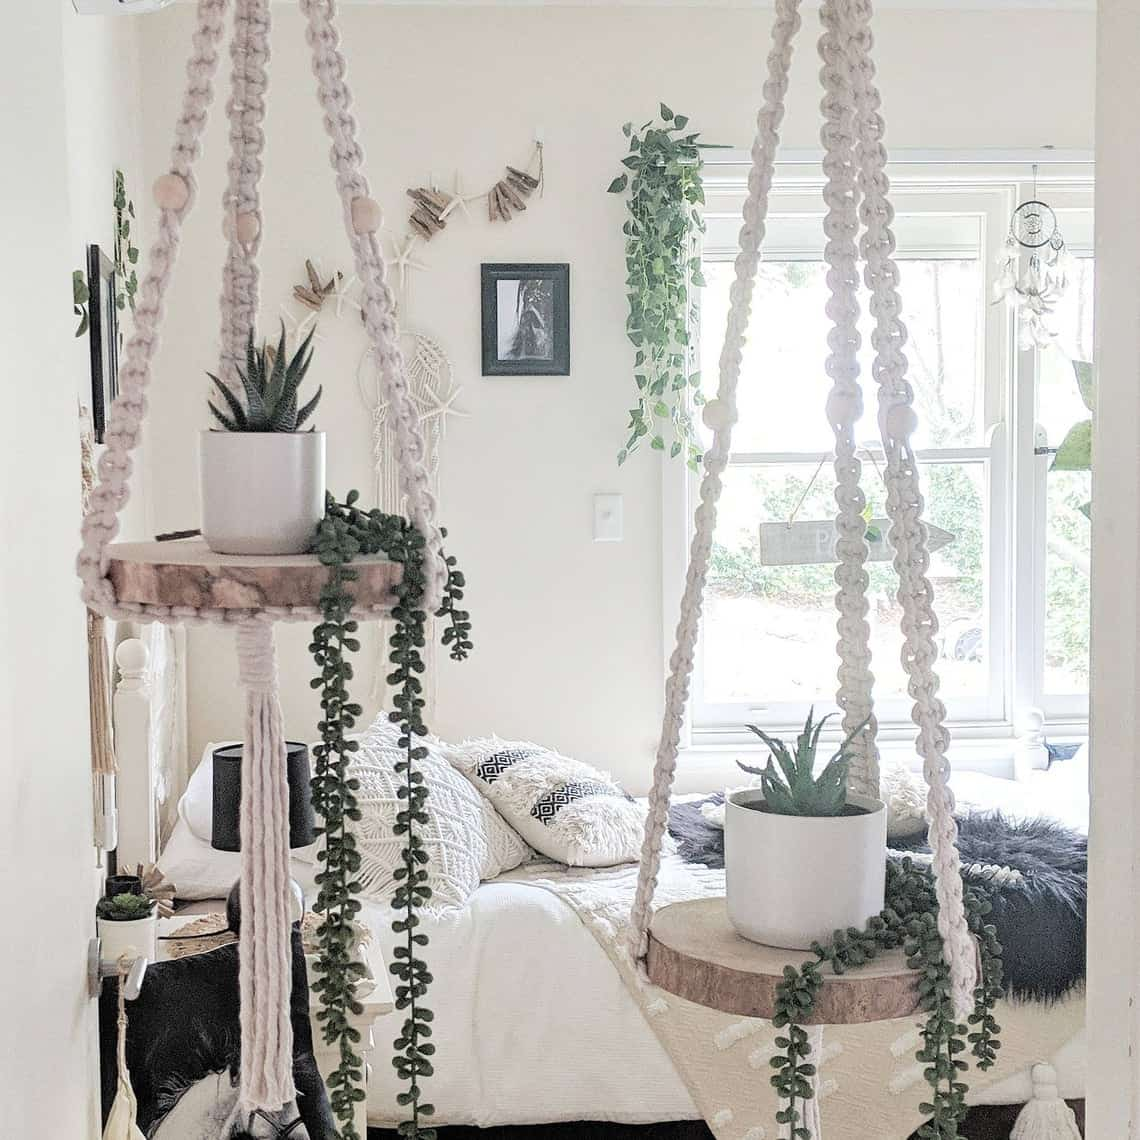 macrame decorating with plants